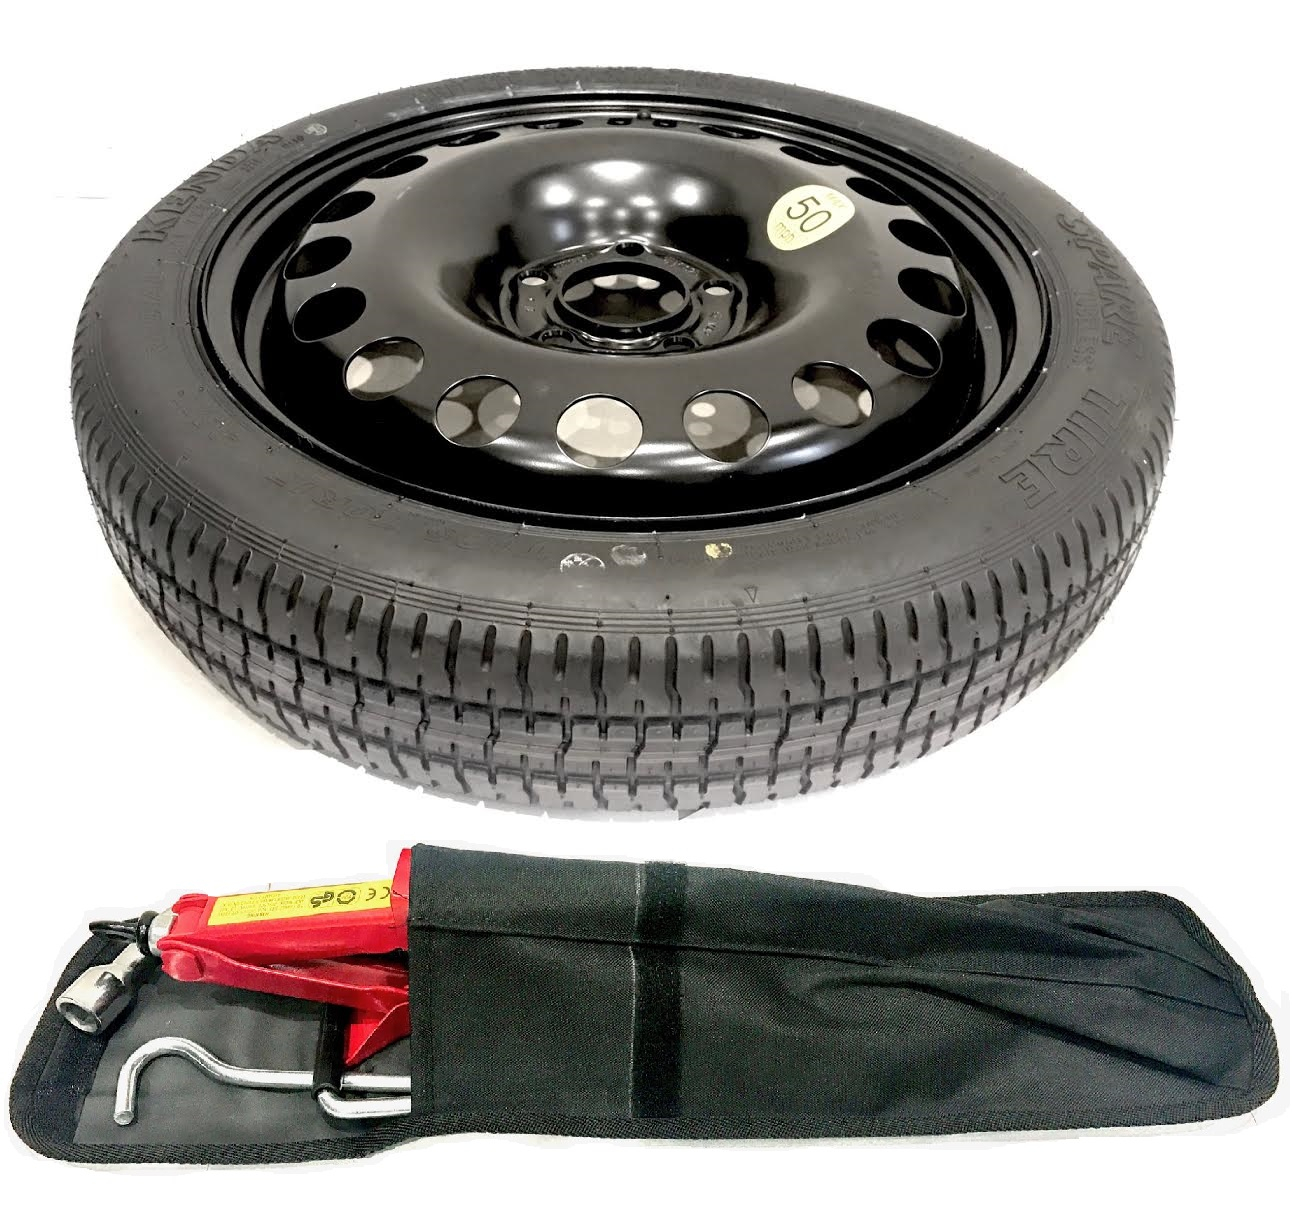 CITROEN C4 PICASSO//GRAND PICASSO 2013-PRESENT DAY 18 SPACE SAVER SPARE WHEEL AND TOOL KIT